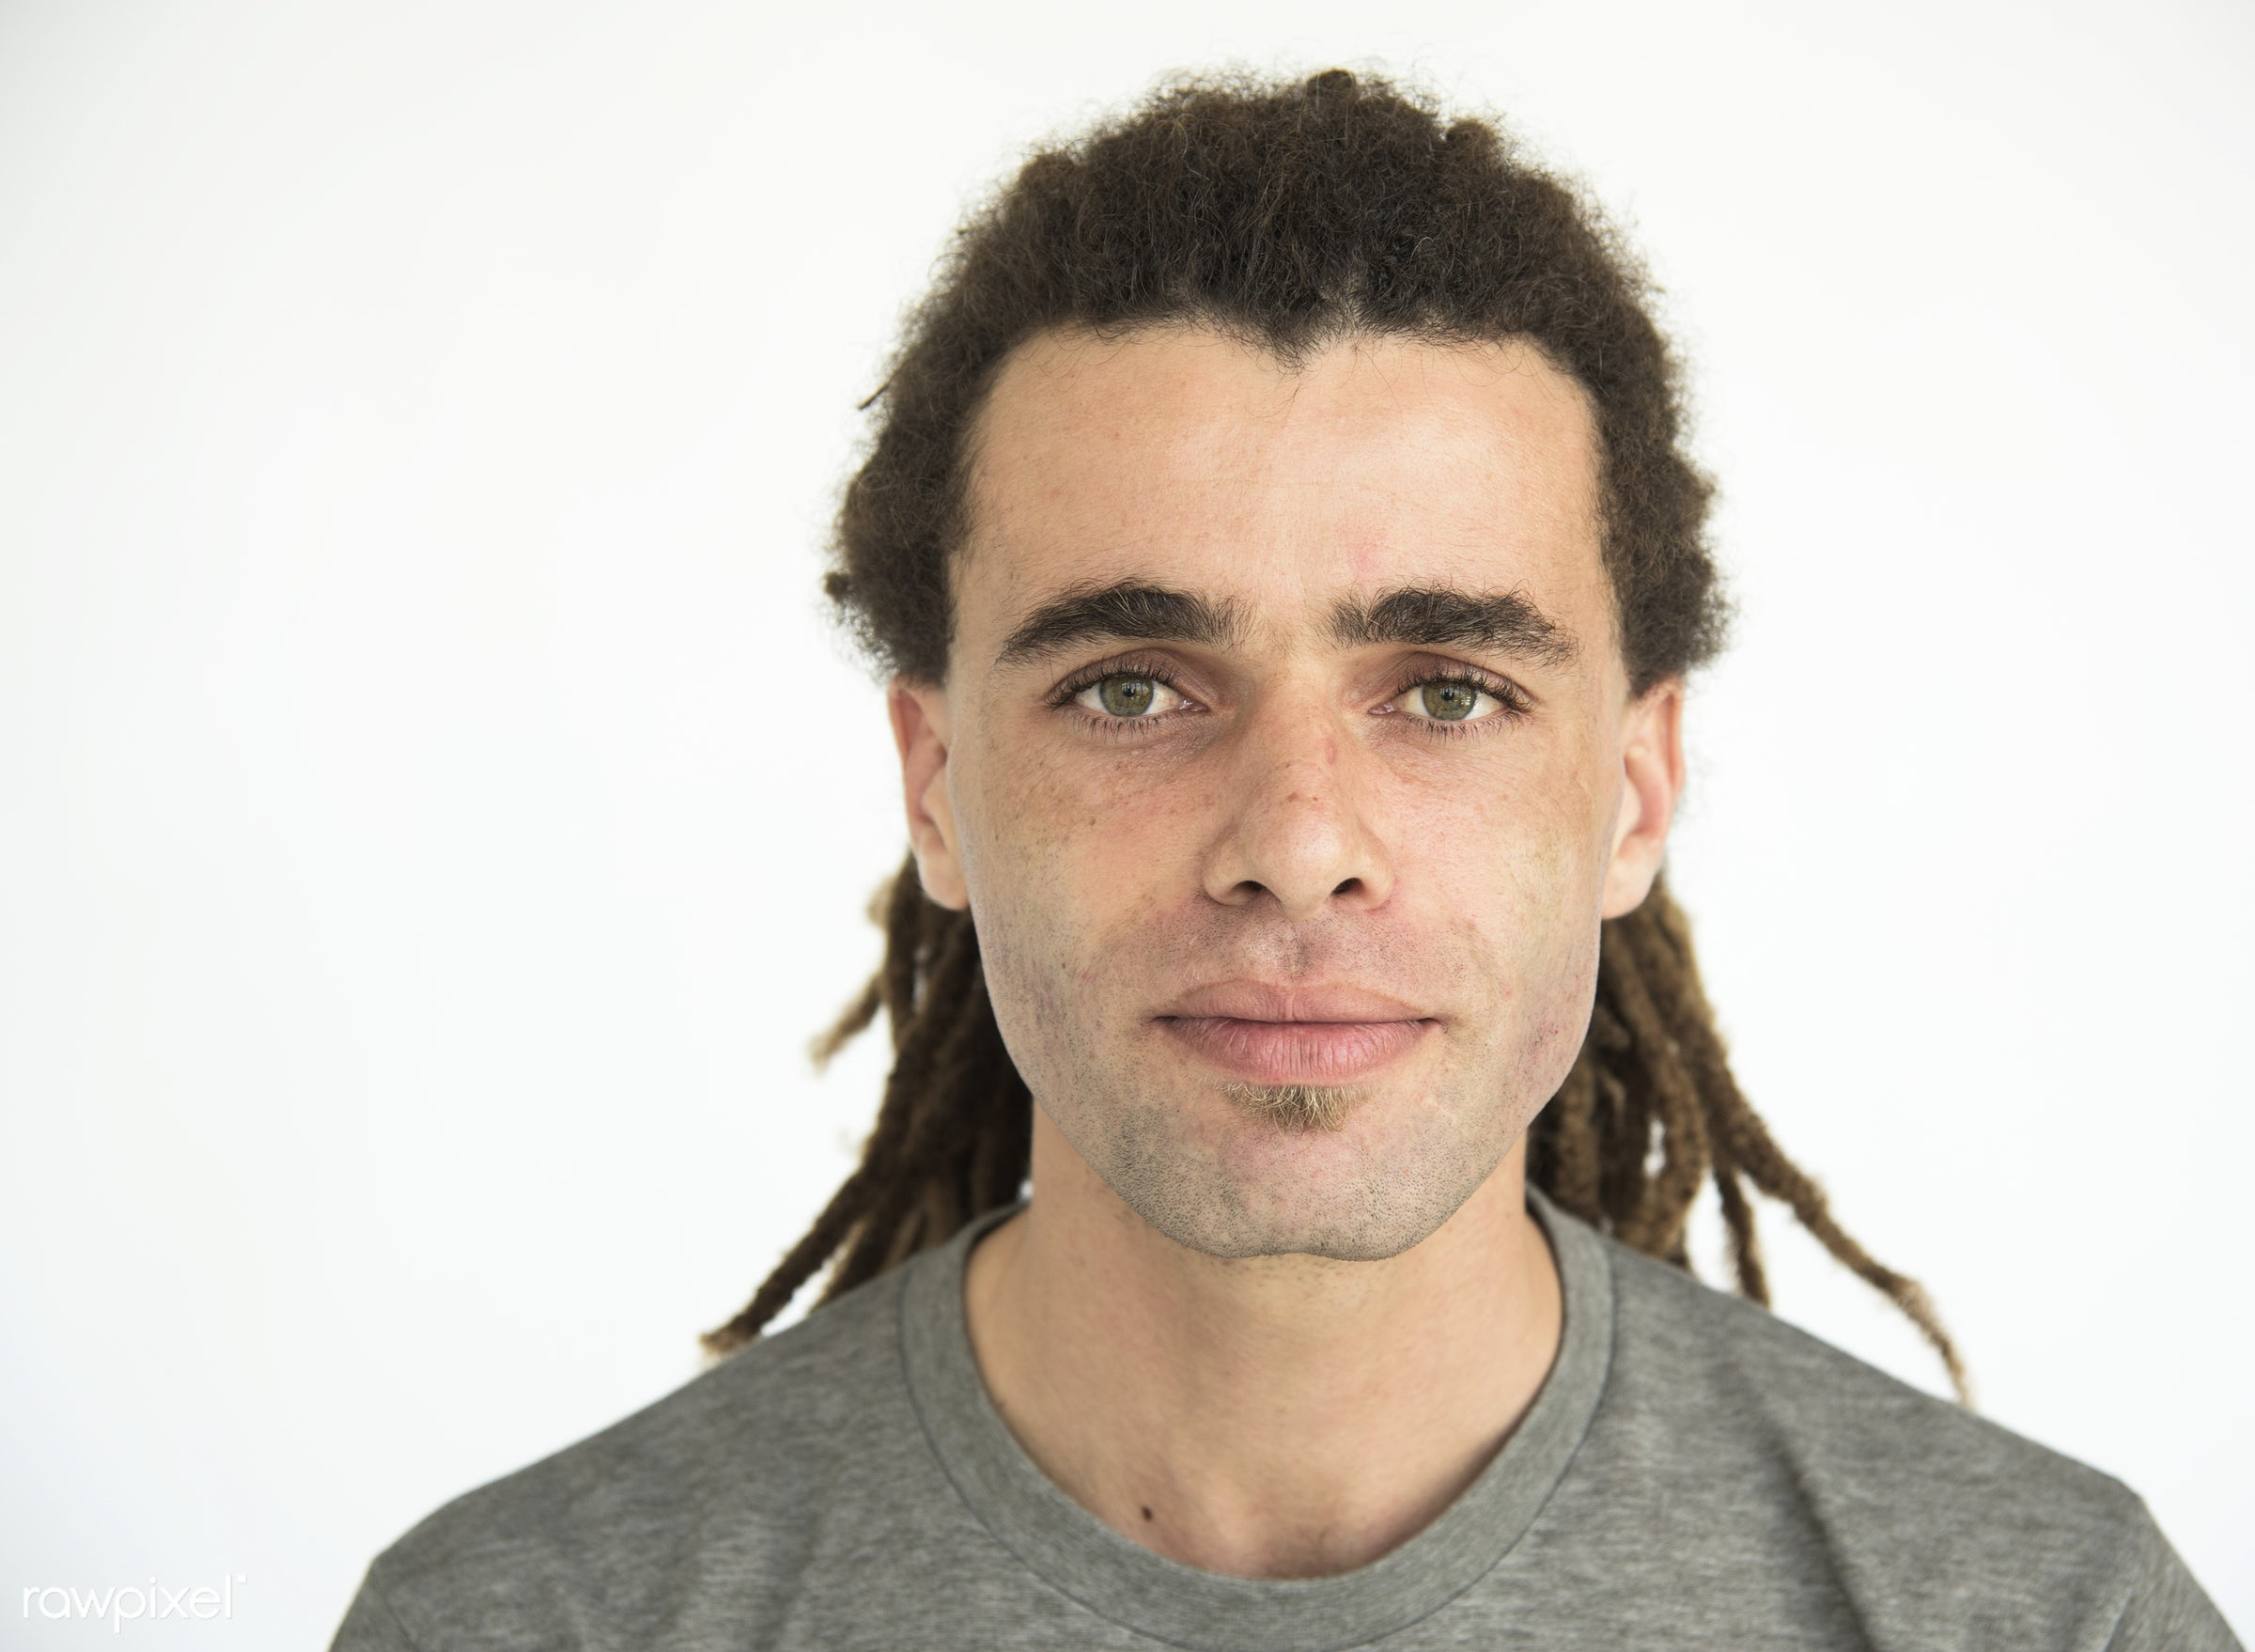 expression, studio, face, people, caucasian, solo, casual, serious, alone, man, isolated, blank, dreadlocks, guy, male,...